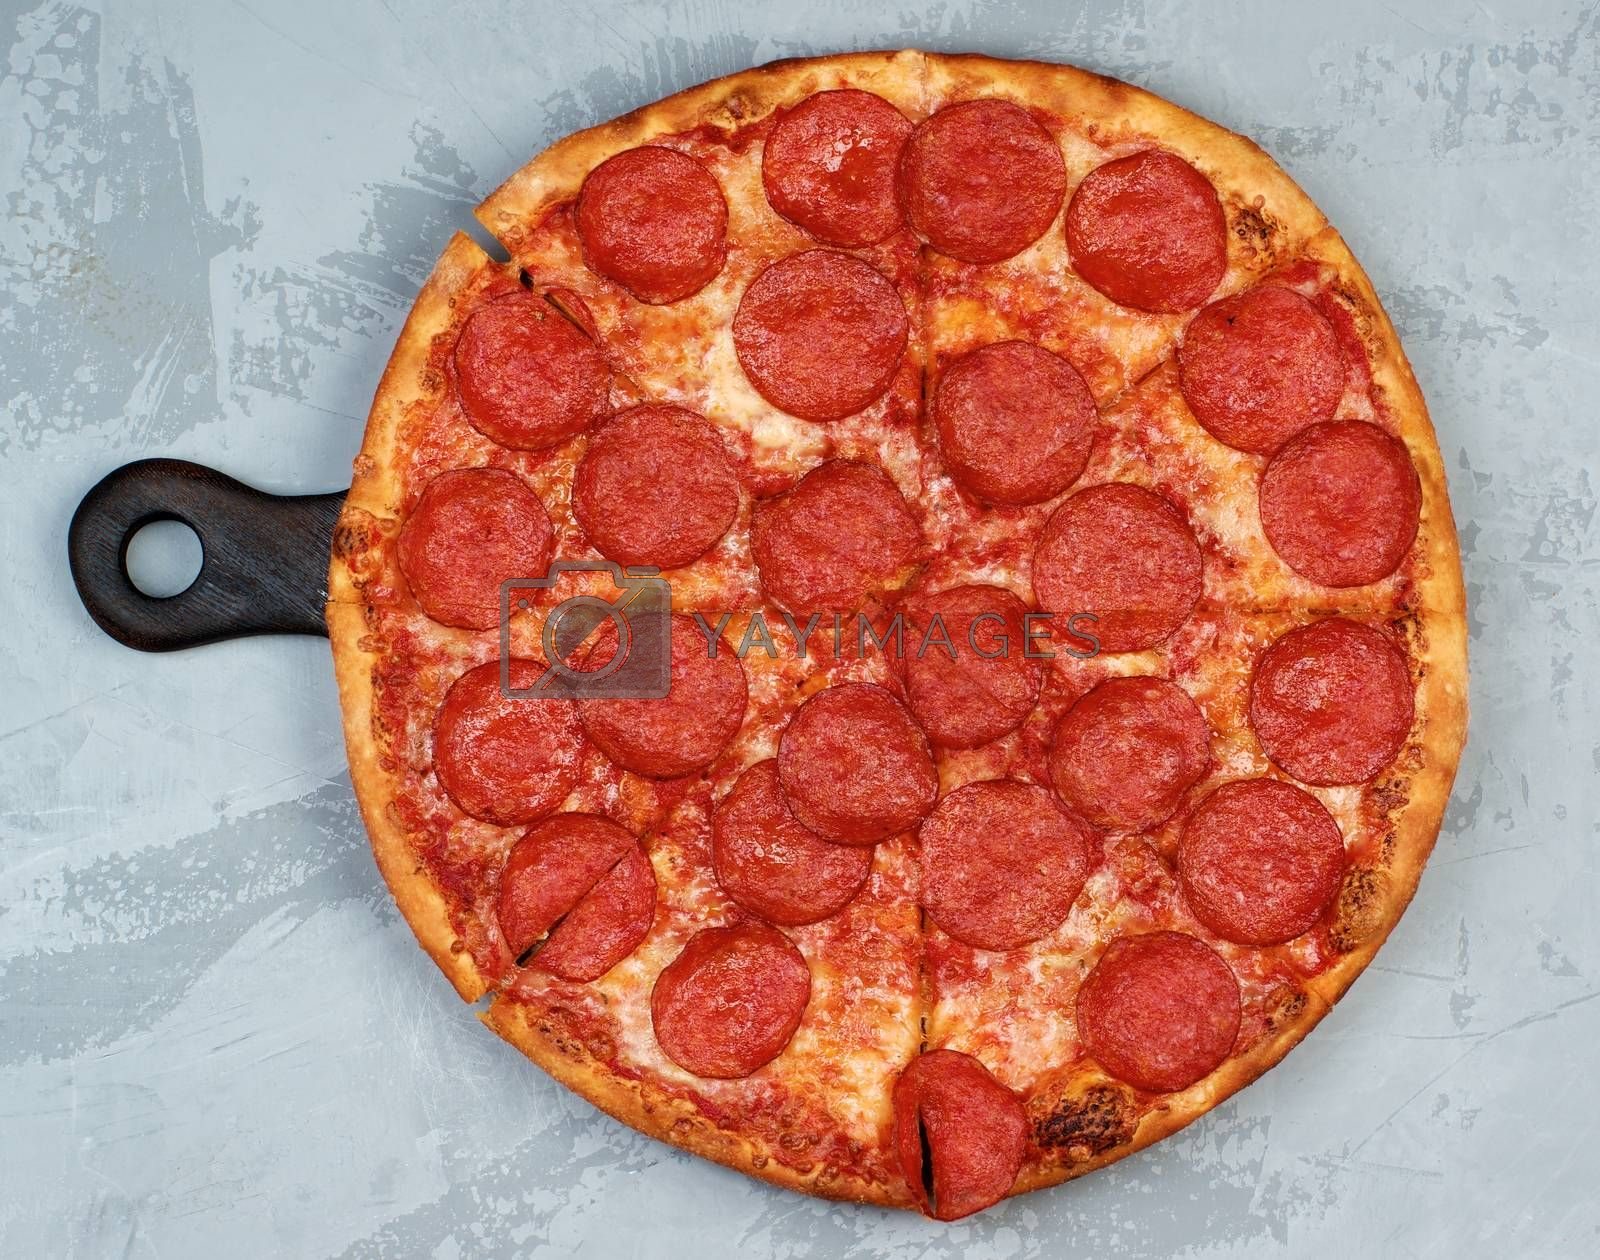 Freshly Baked Pepperoni Pizza with Tomato Sauce, Pepperoni and Cheese on Cutting Board on Grey Textured background. Top View